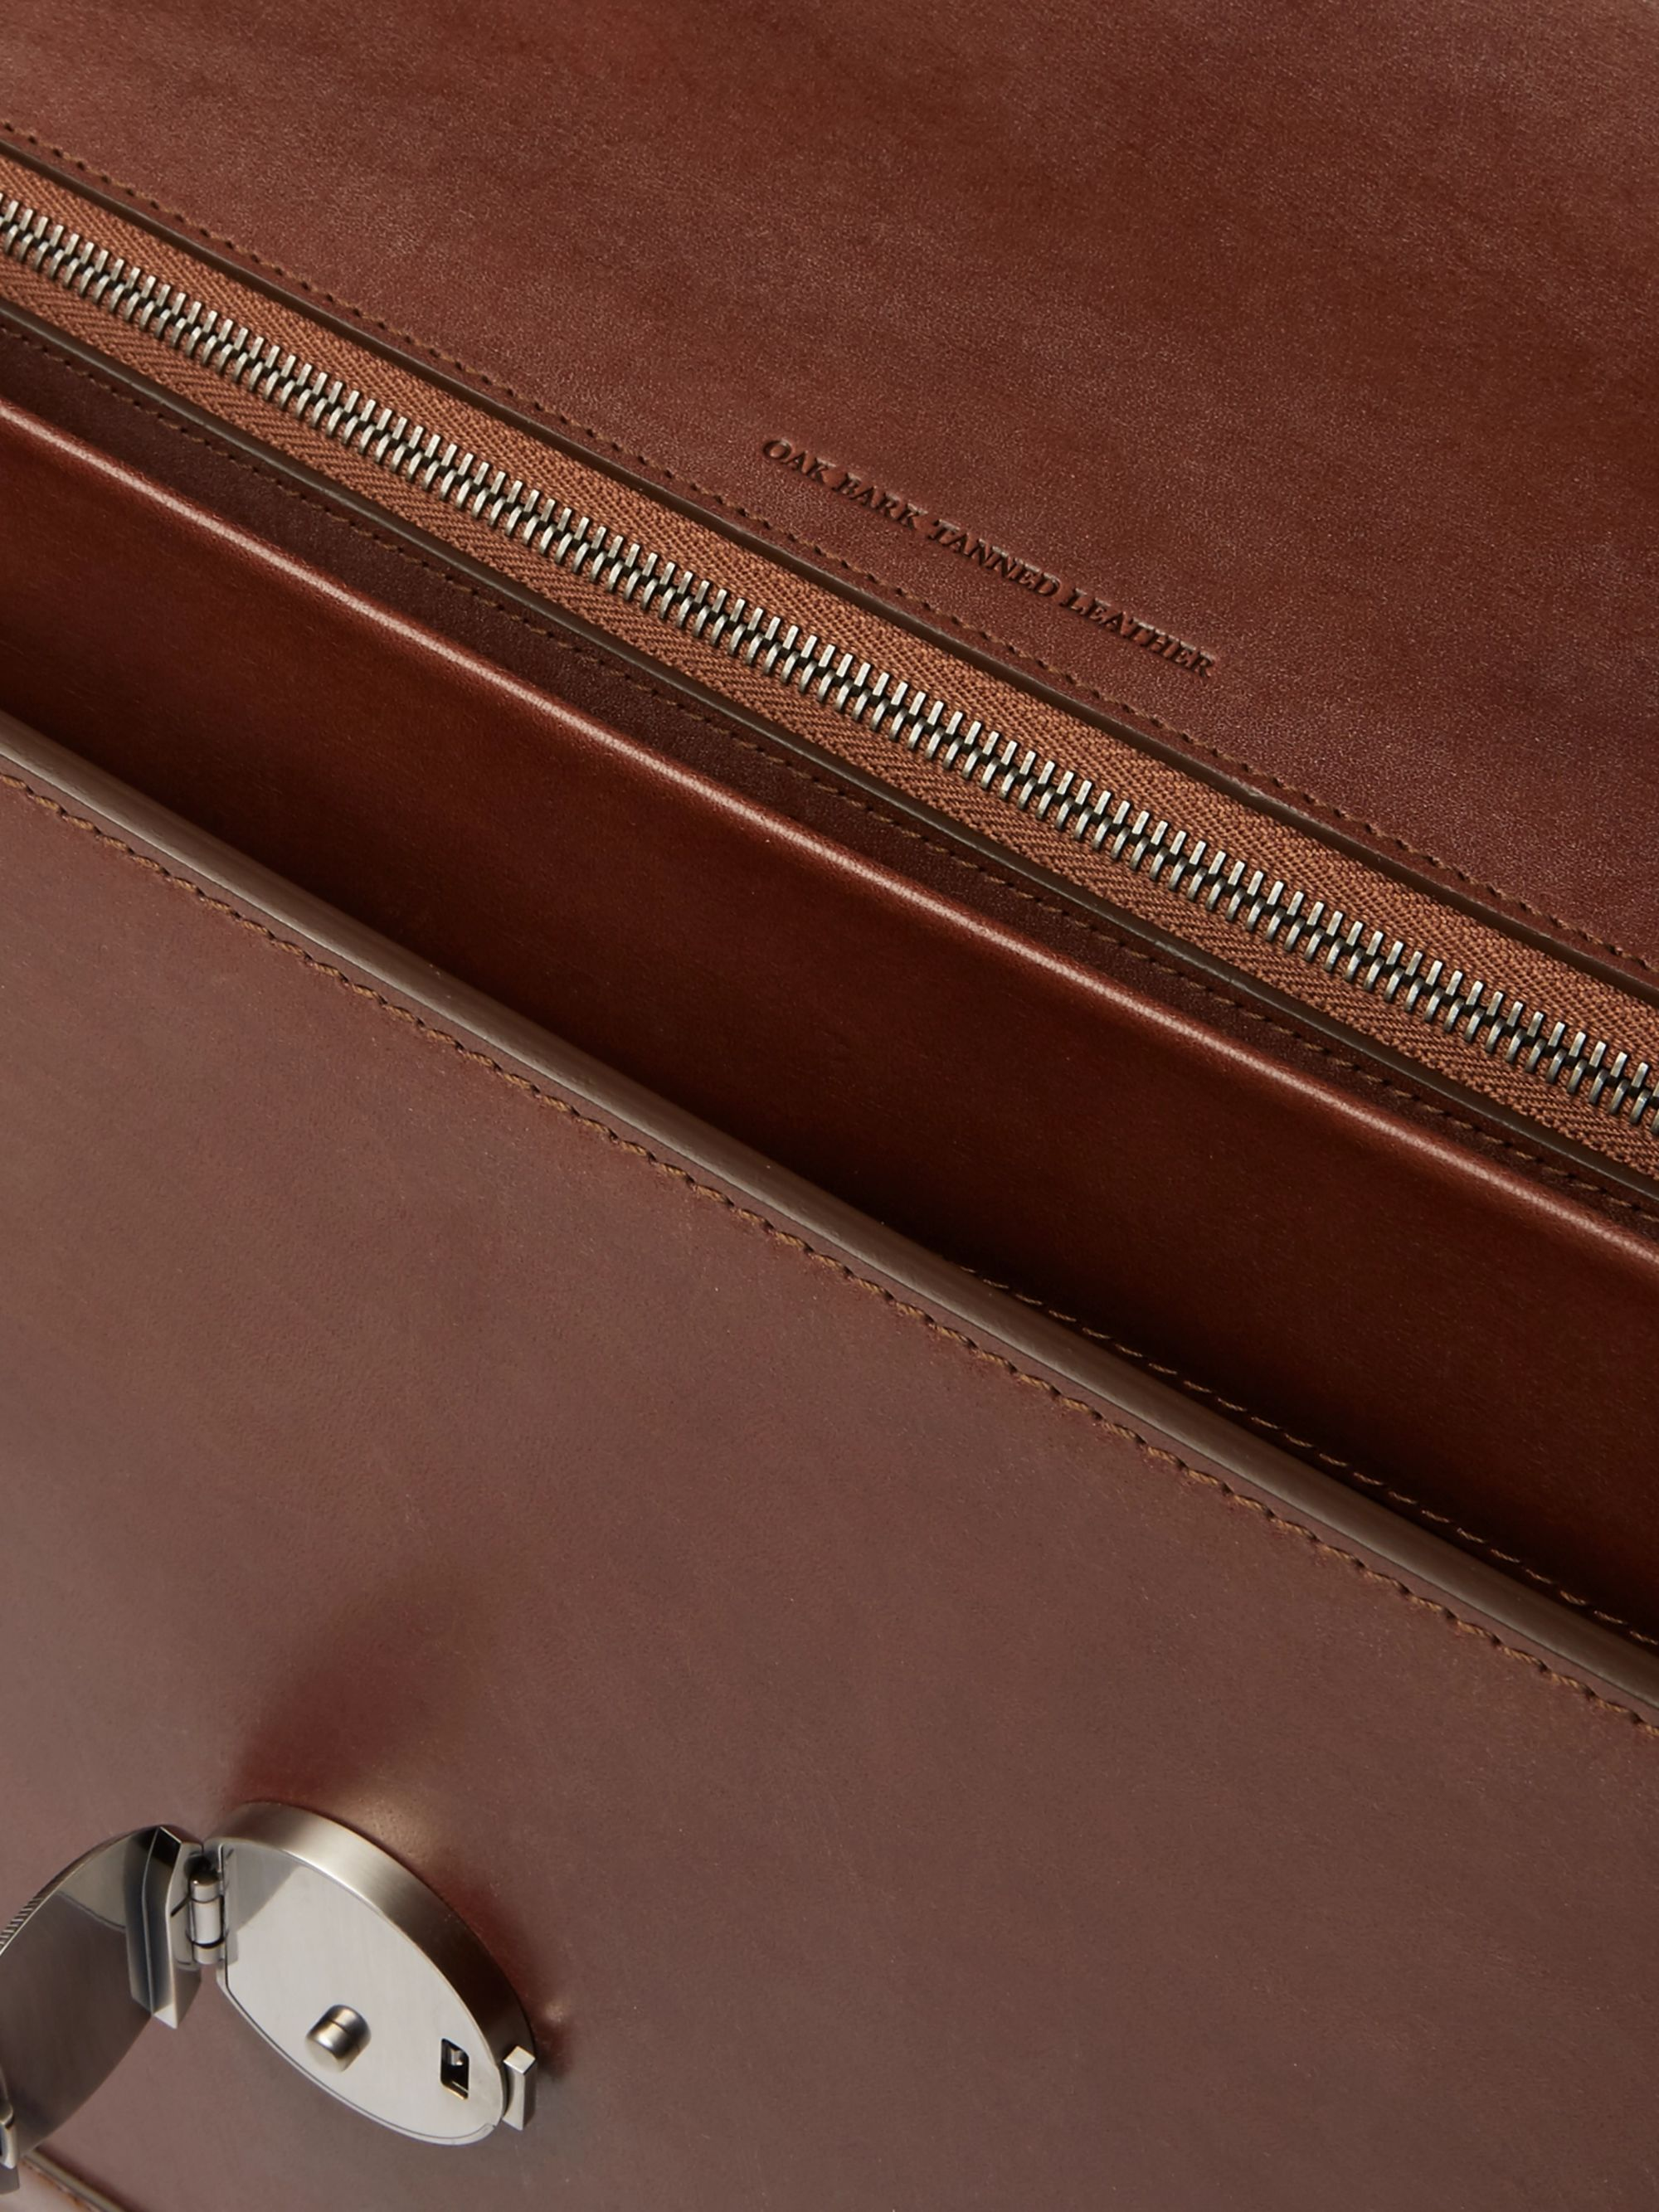 James Purdey & Sons Audley Leather Briefcase